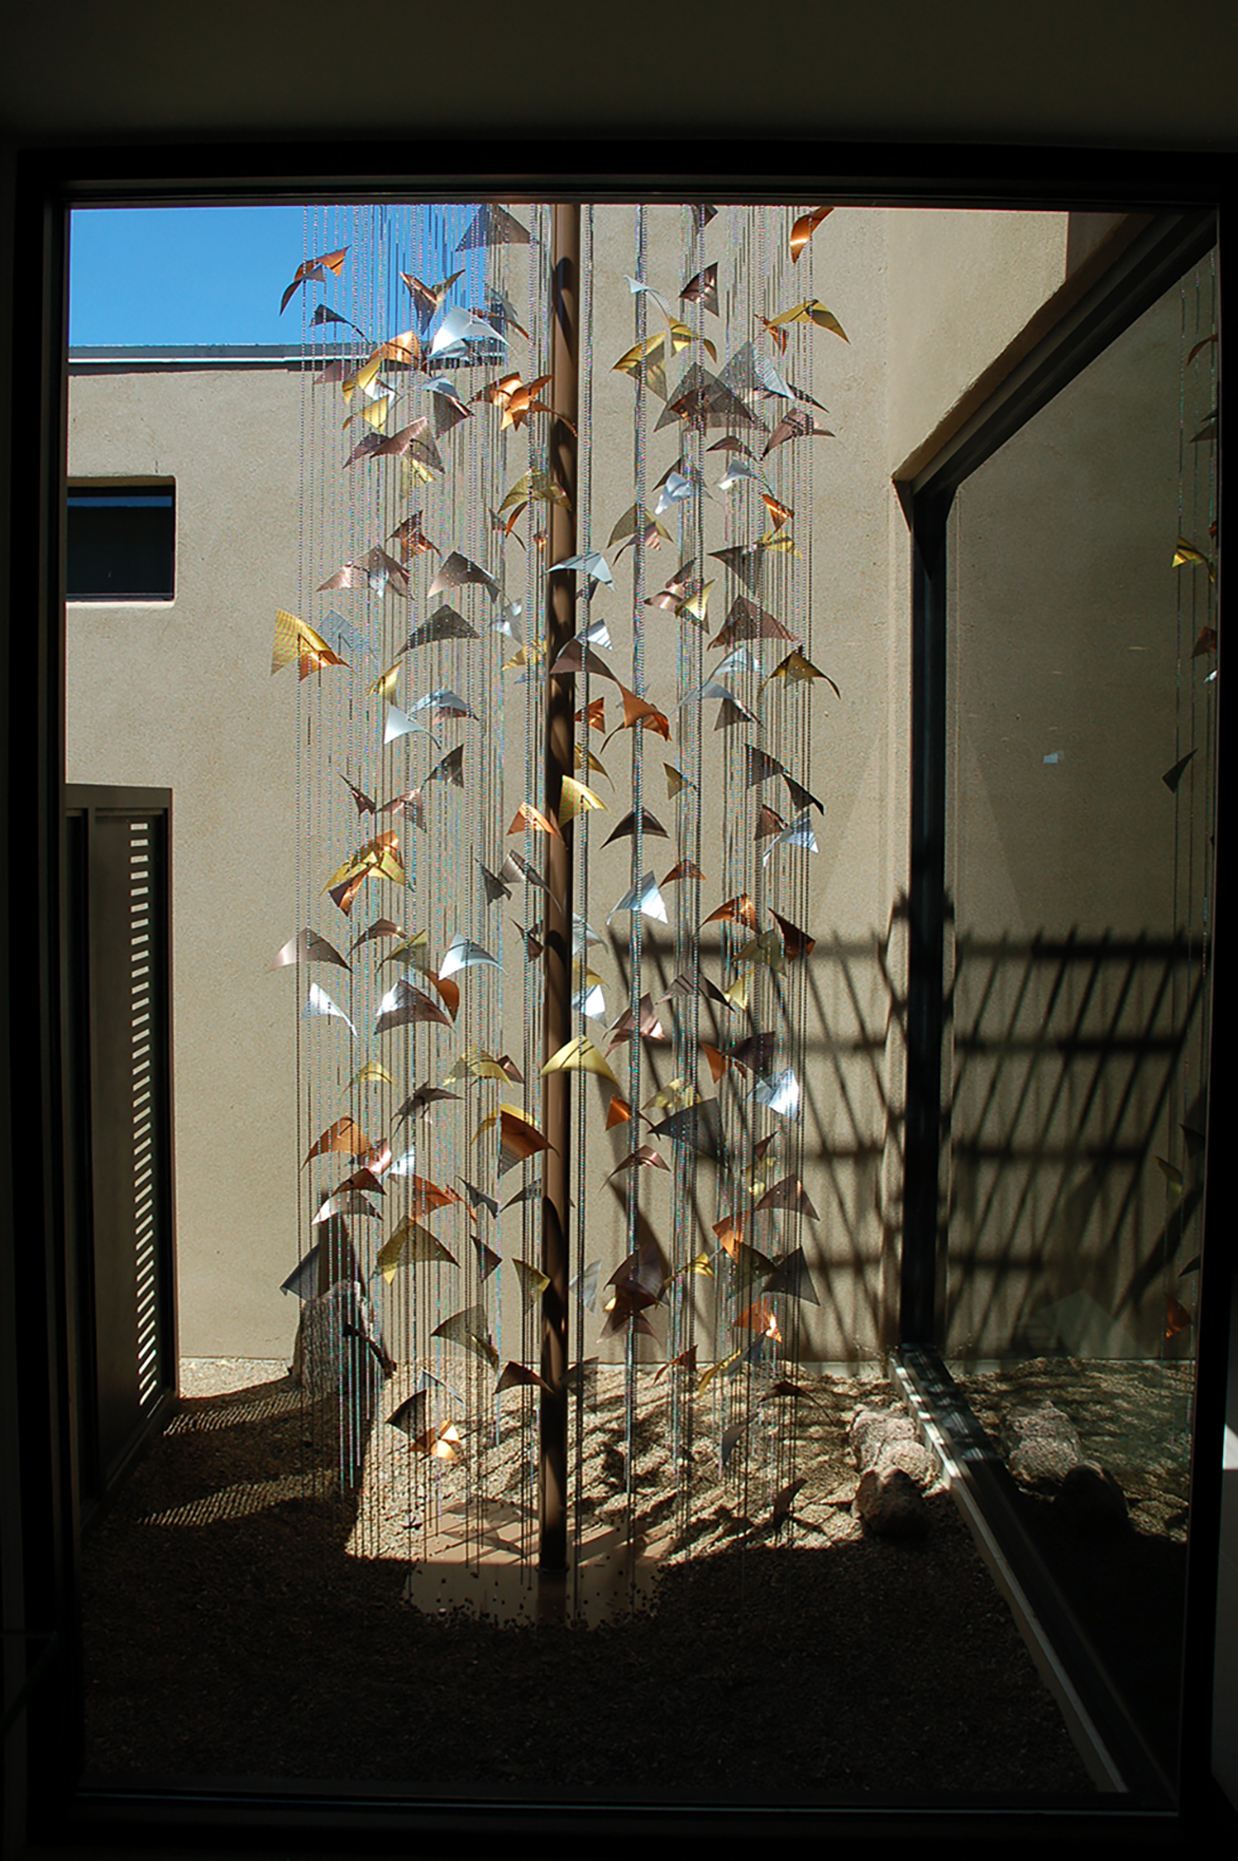 Residential suspended sculpture by Talley Fisher in Arizona